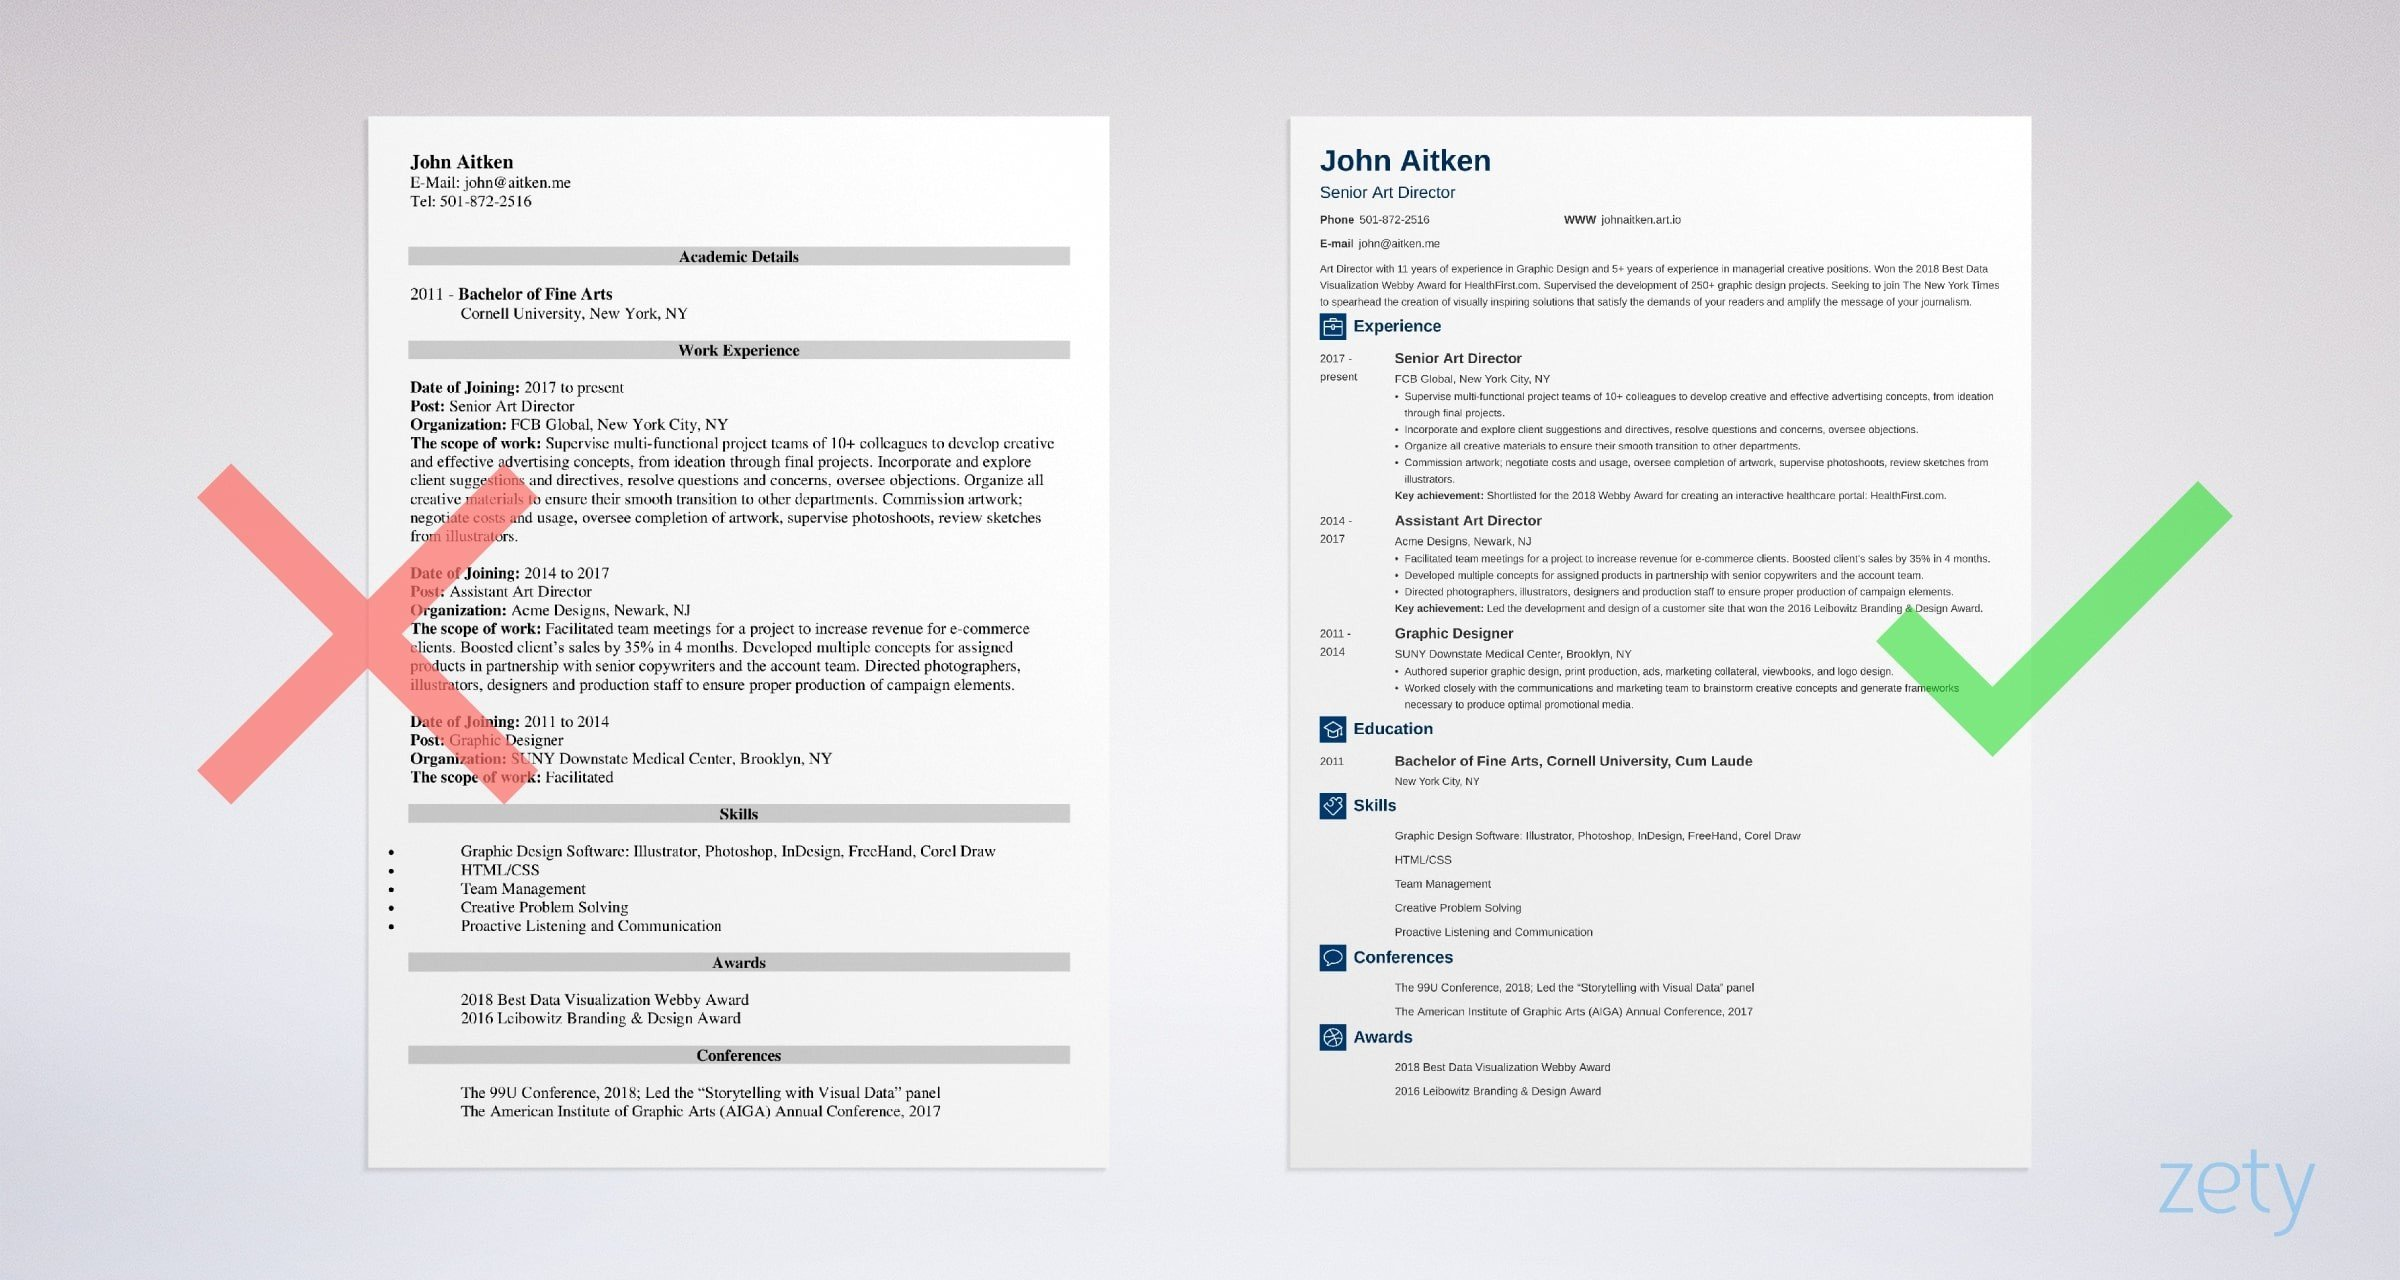 art director resume examples writing guide keywords for investigator objective leadership Resume Keywords For Art Director Resume